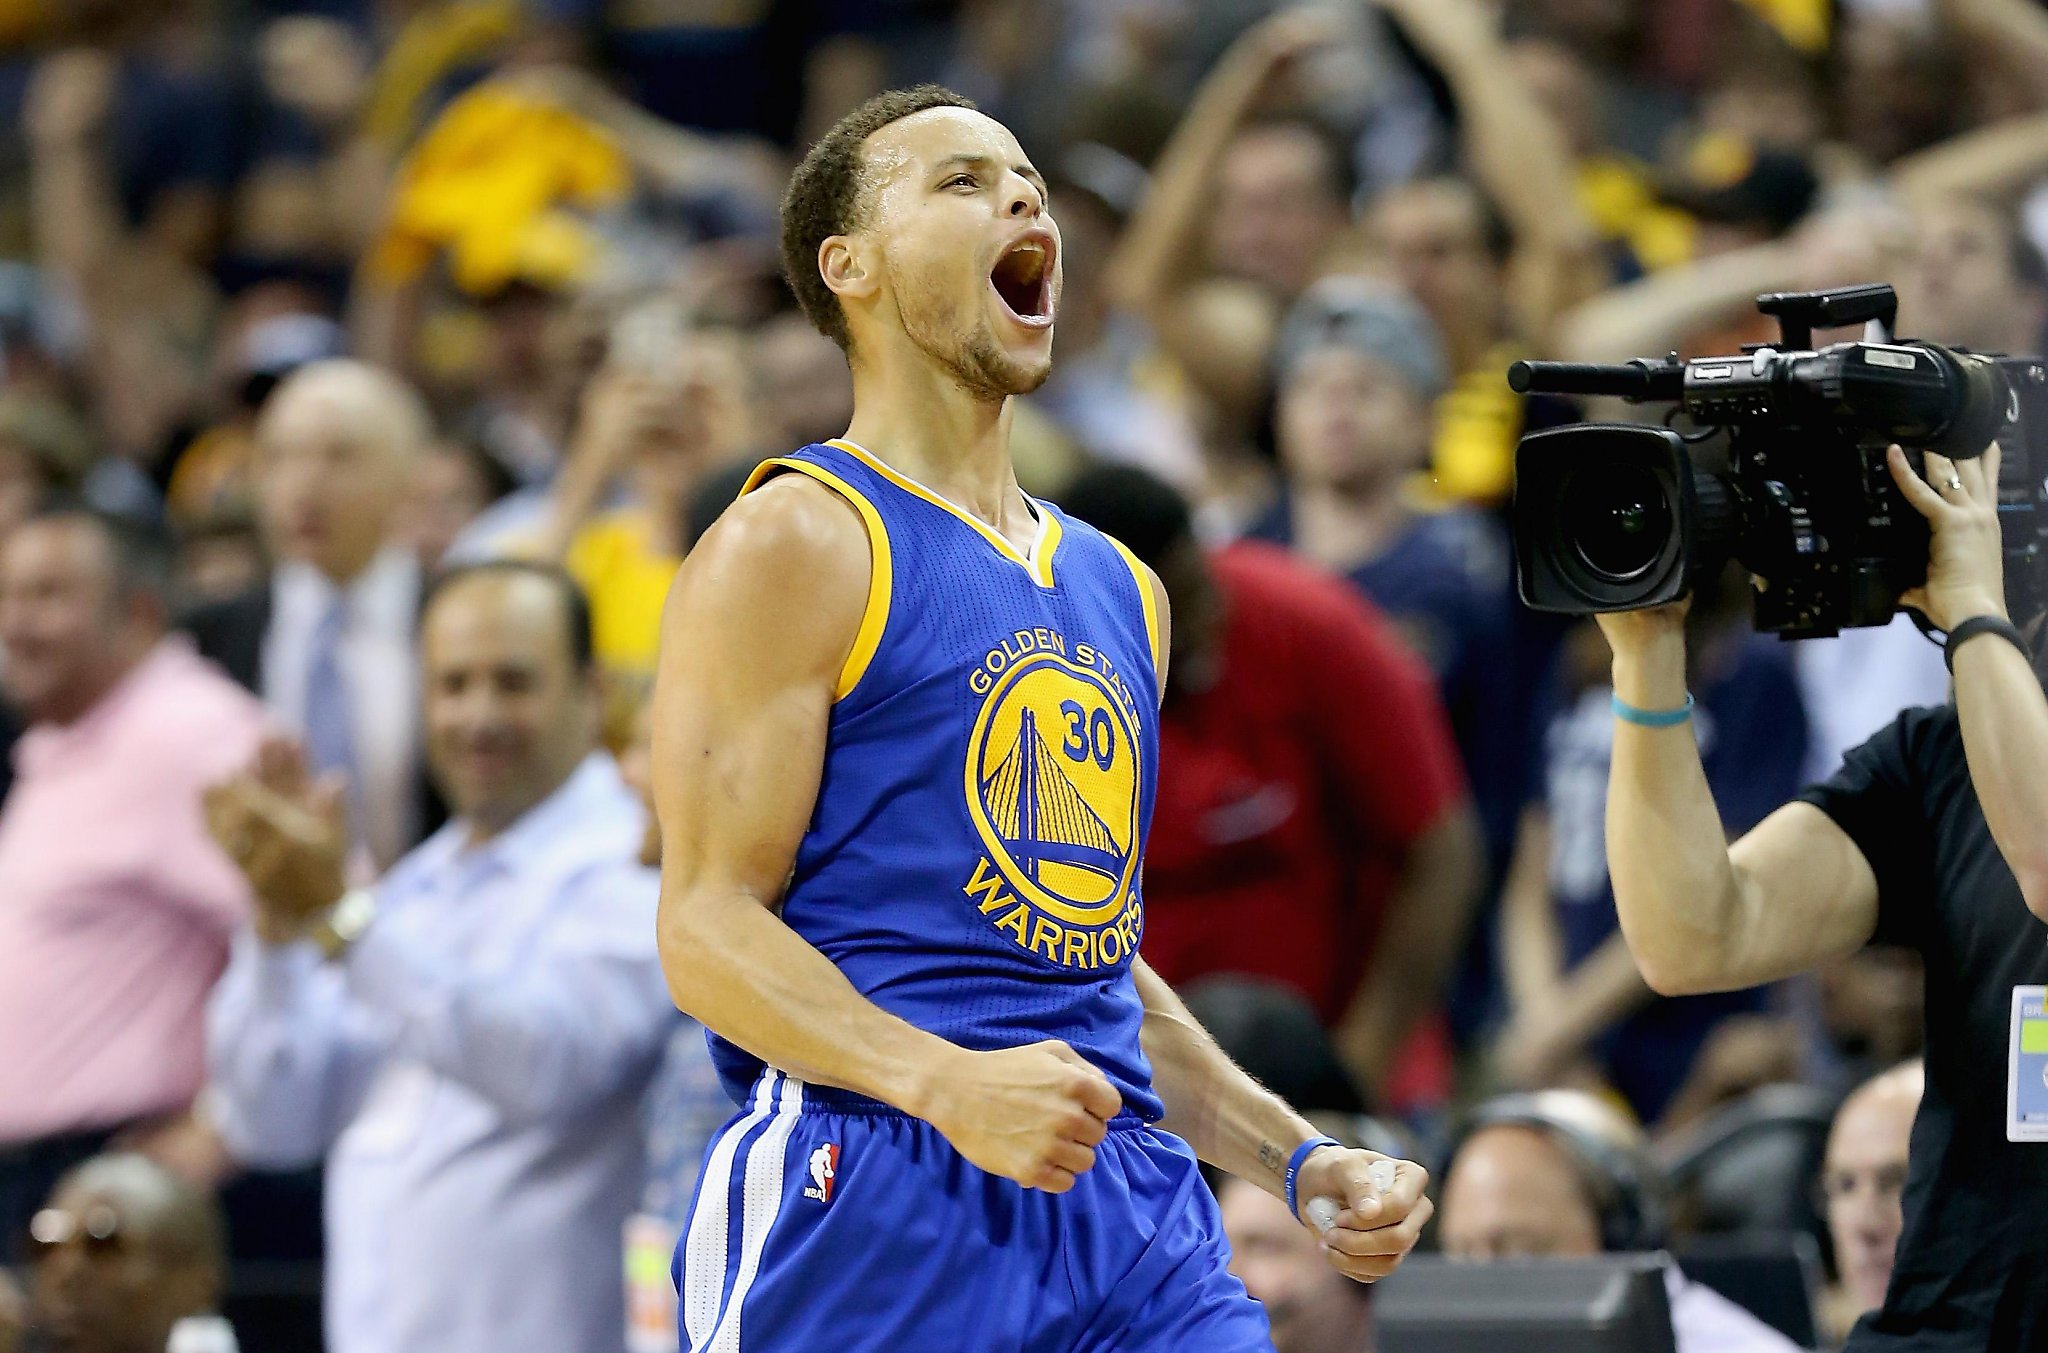 May 15, 2015: Steph Curry hits 62-footer, Warriors eliminate Grizzlies